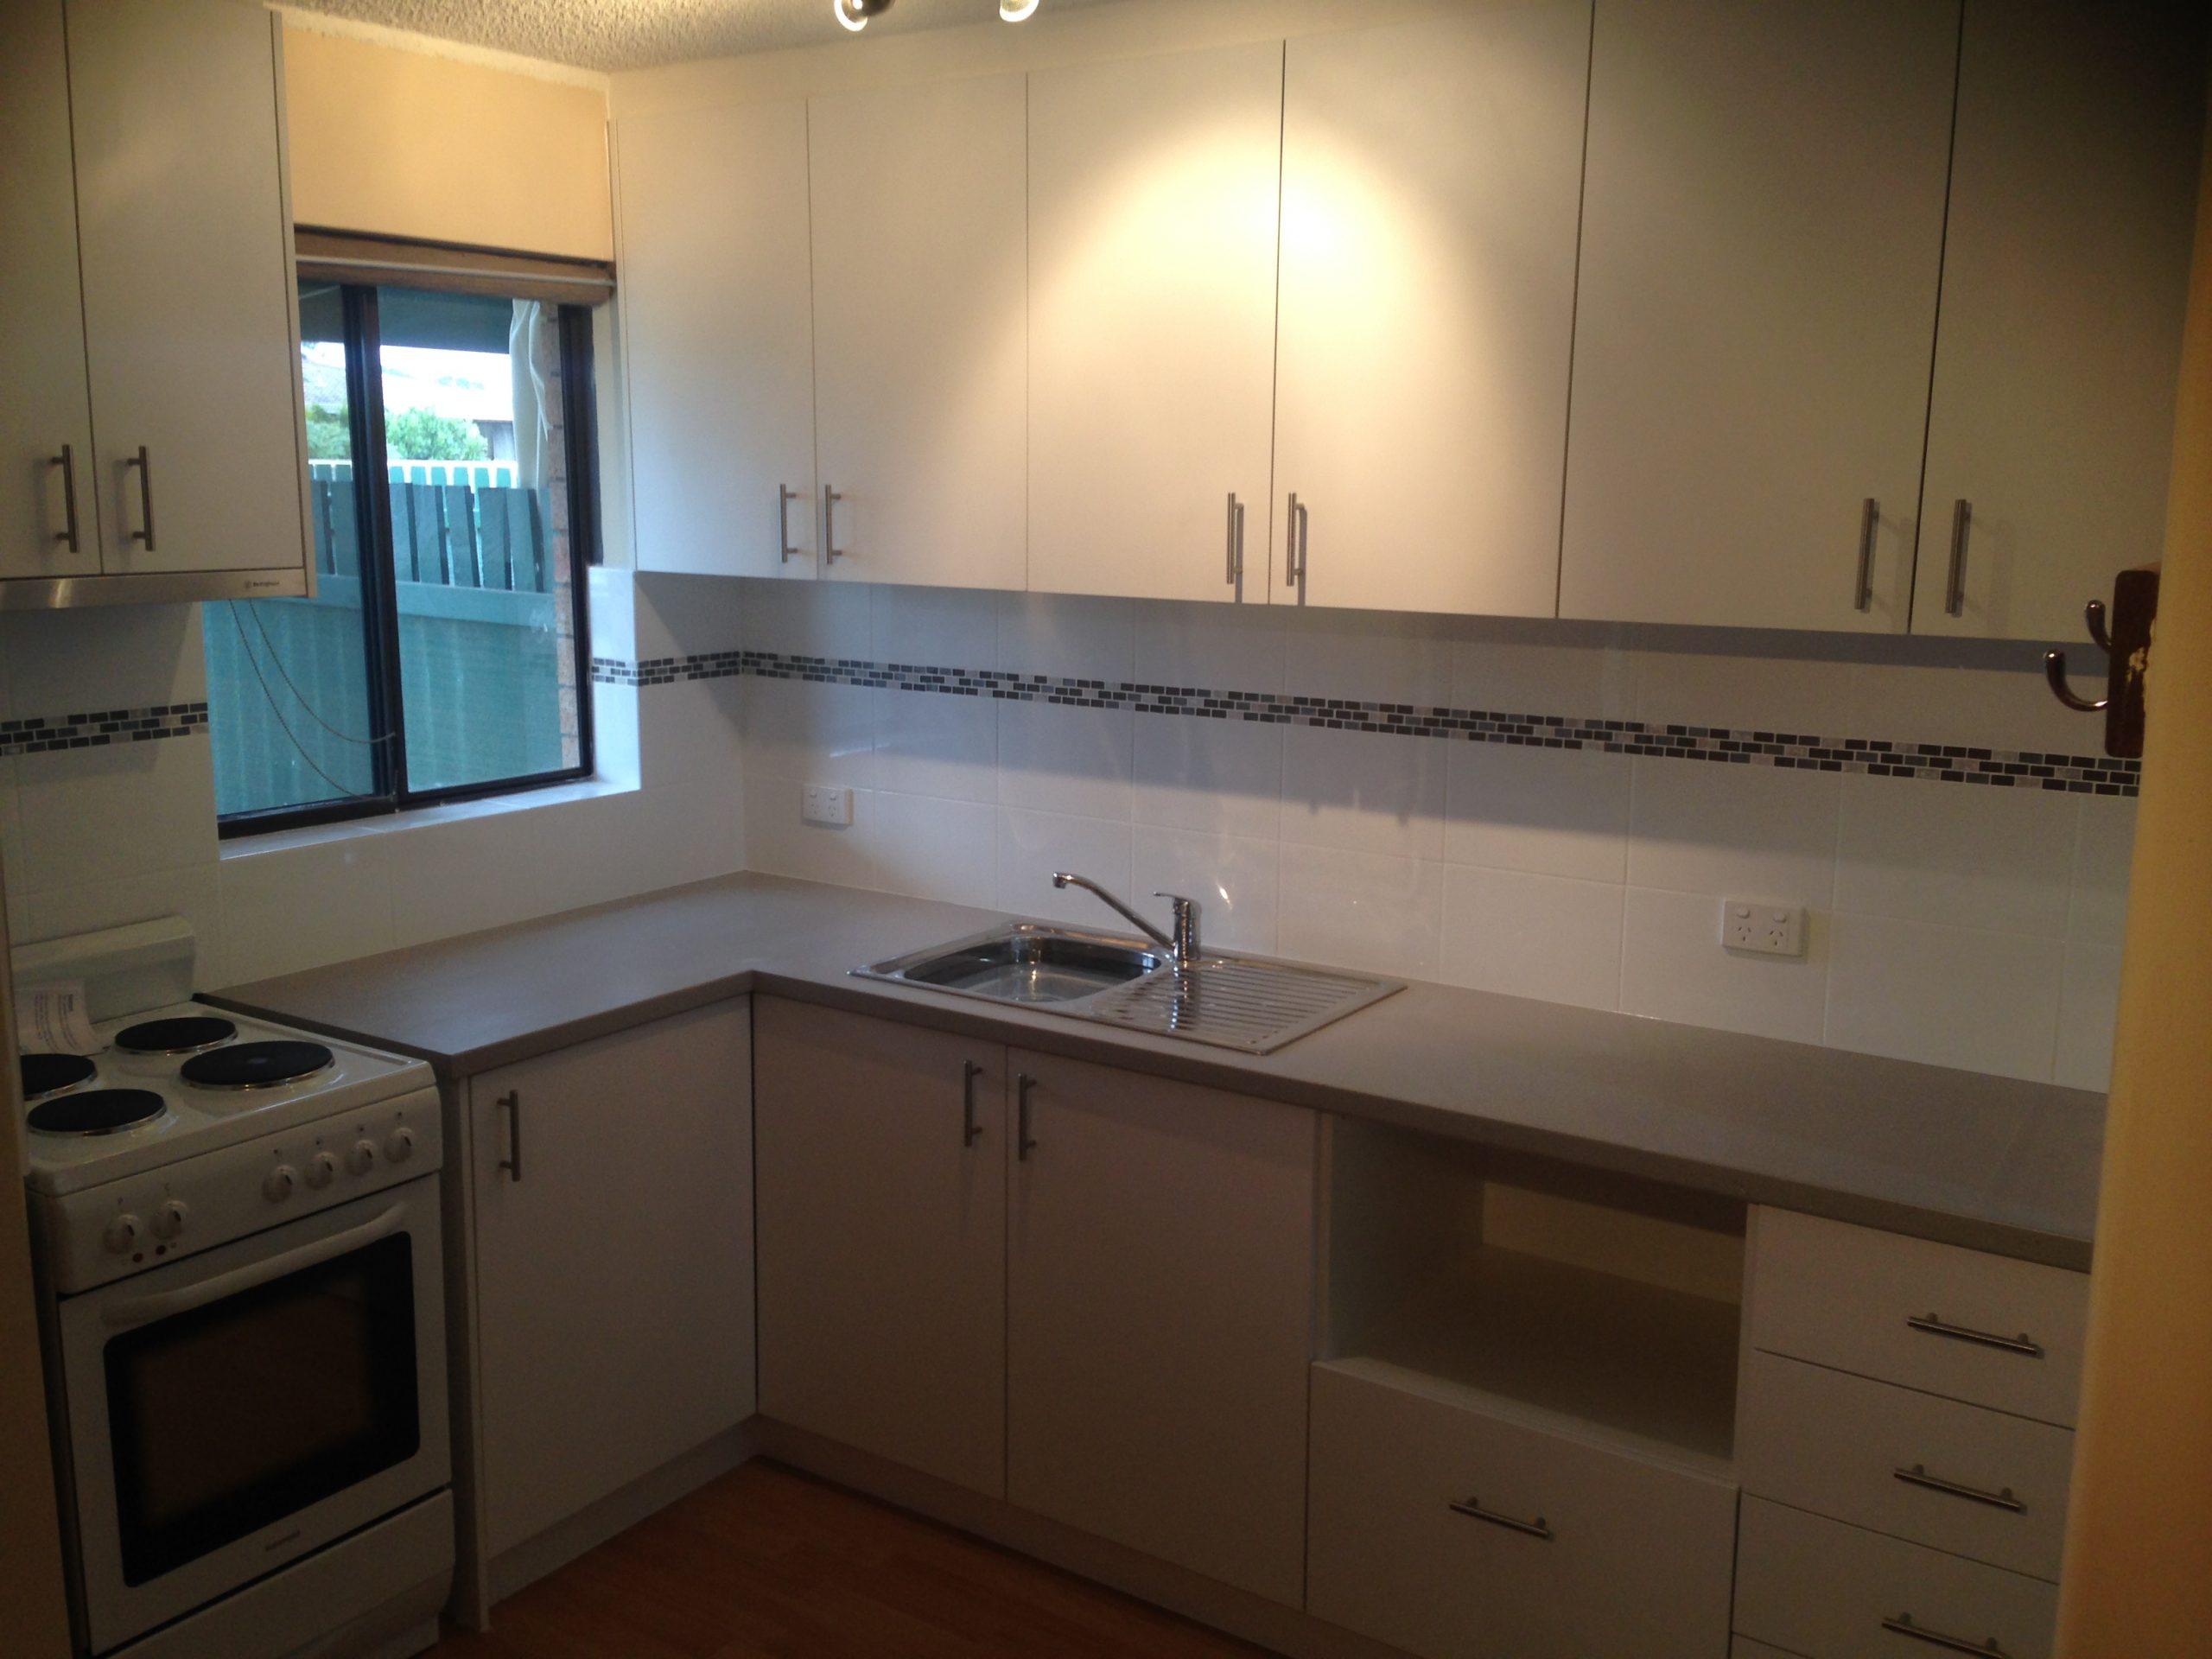 Cabinetry, Kitchens, Melville, renovation,